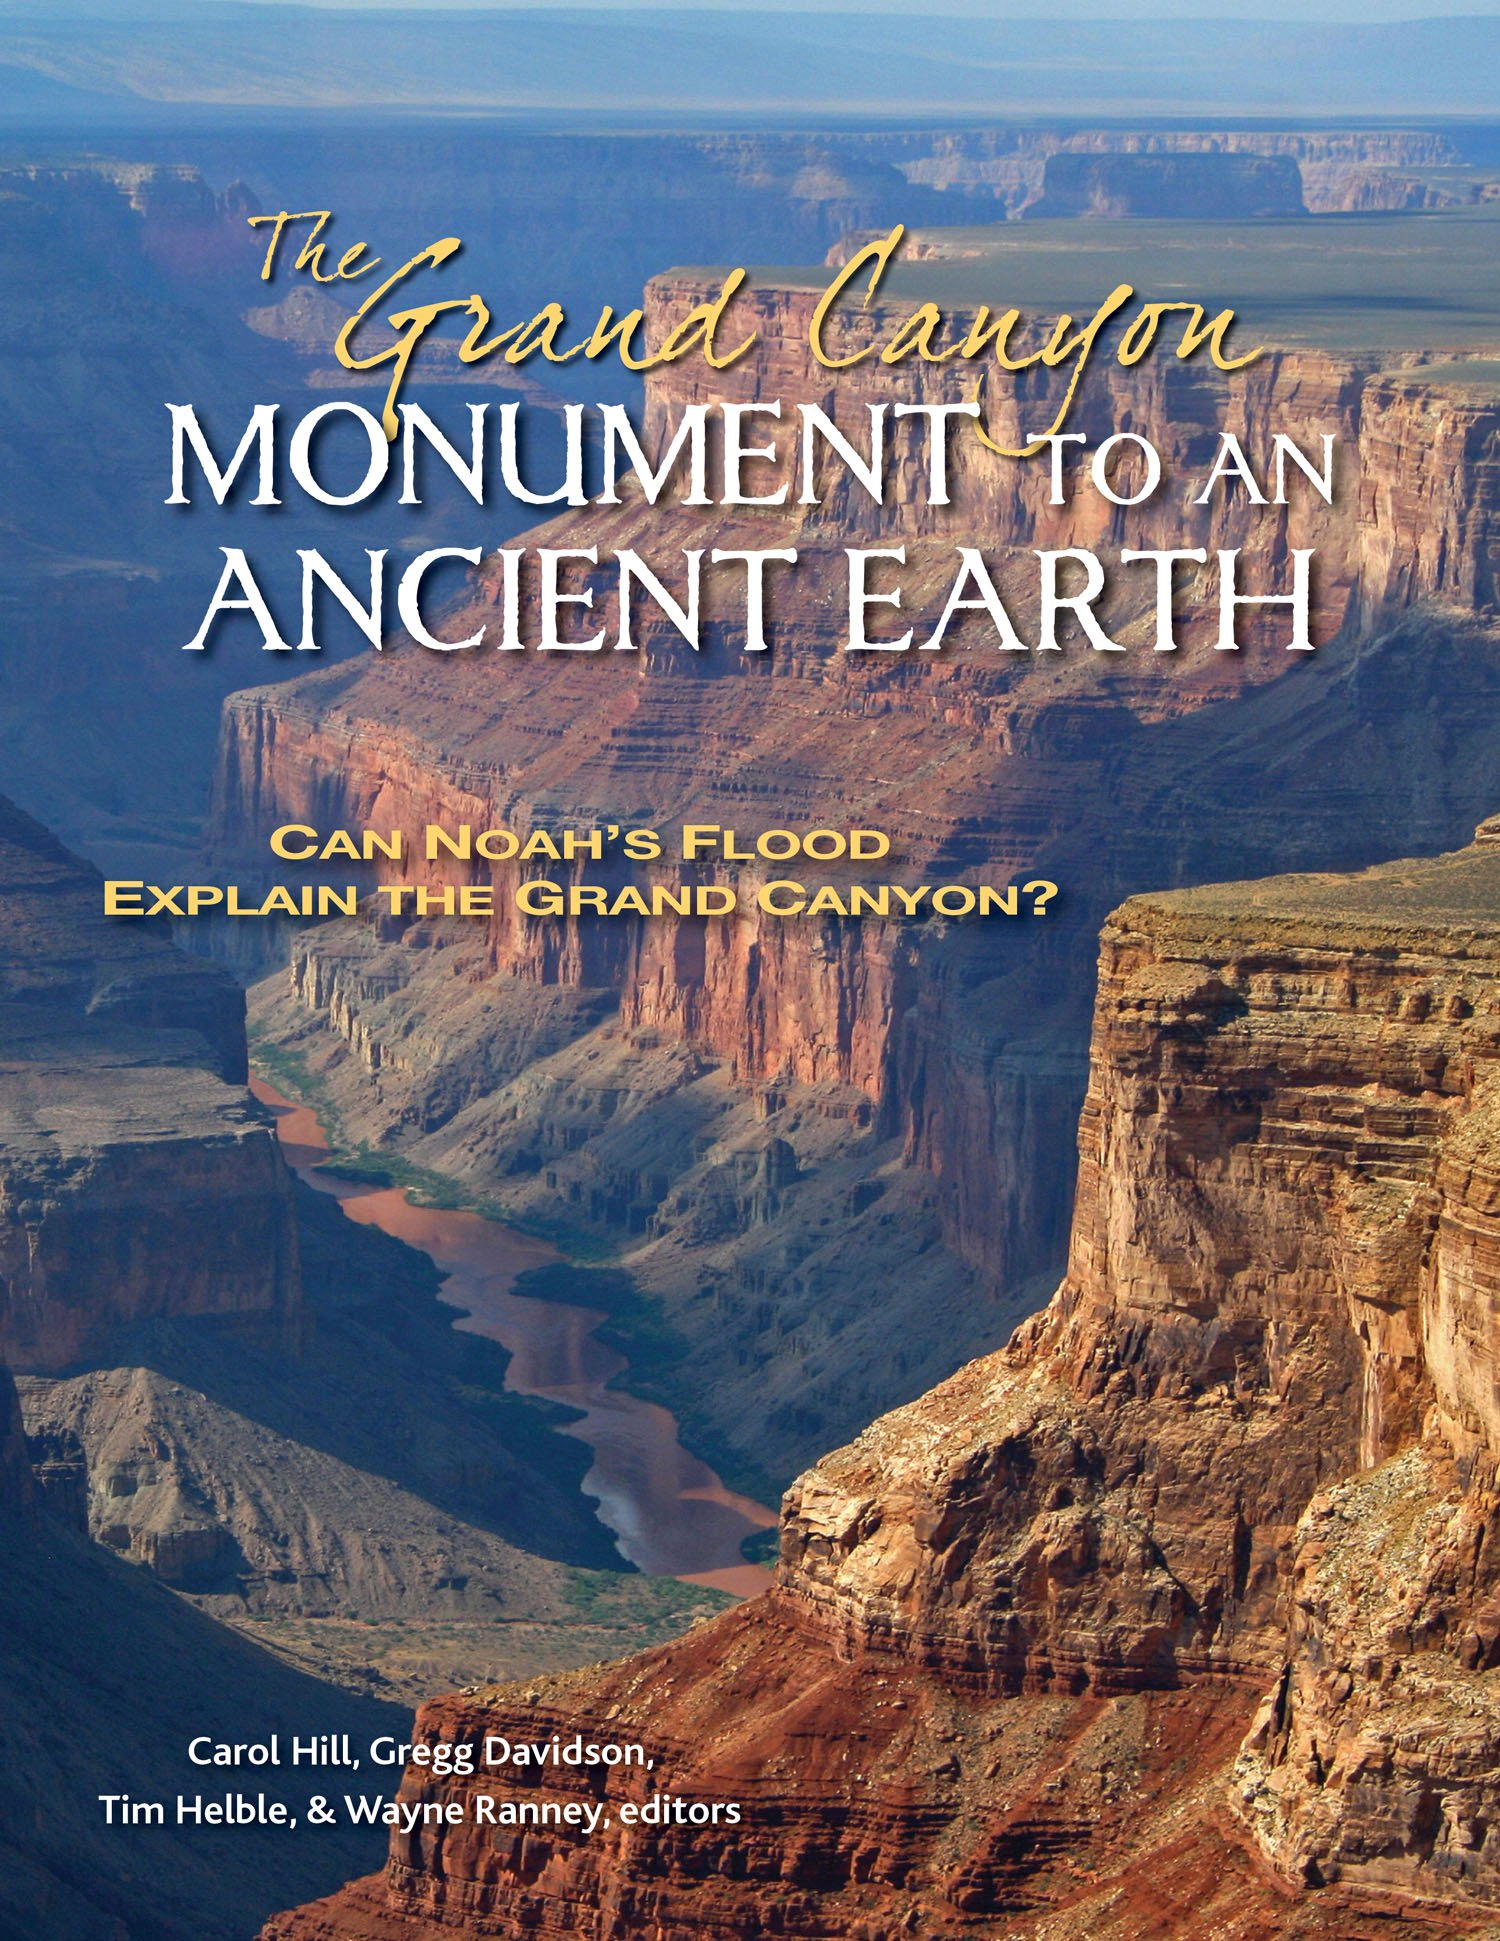 The Grand Canyon- Monument to an Ancient Earth edited.jpg